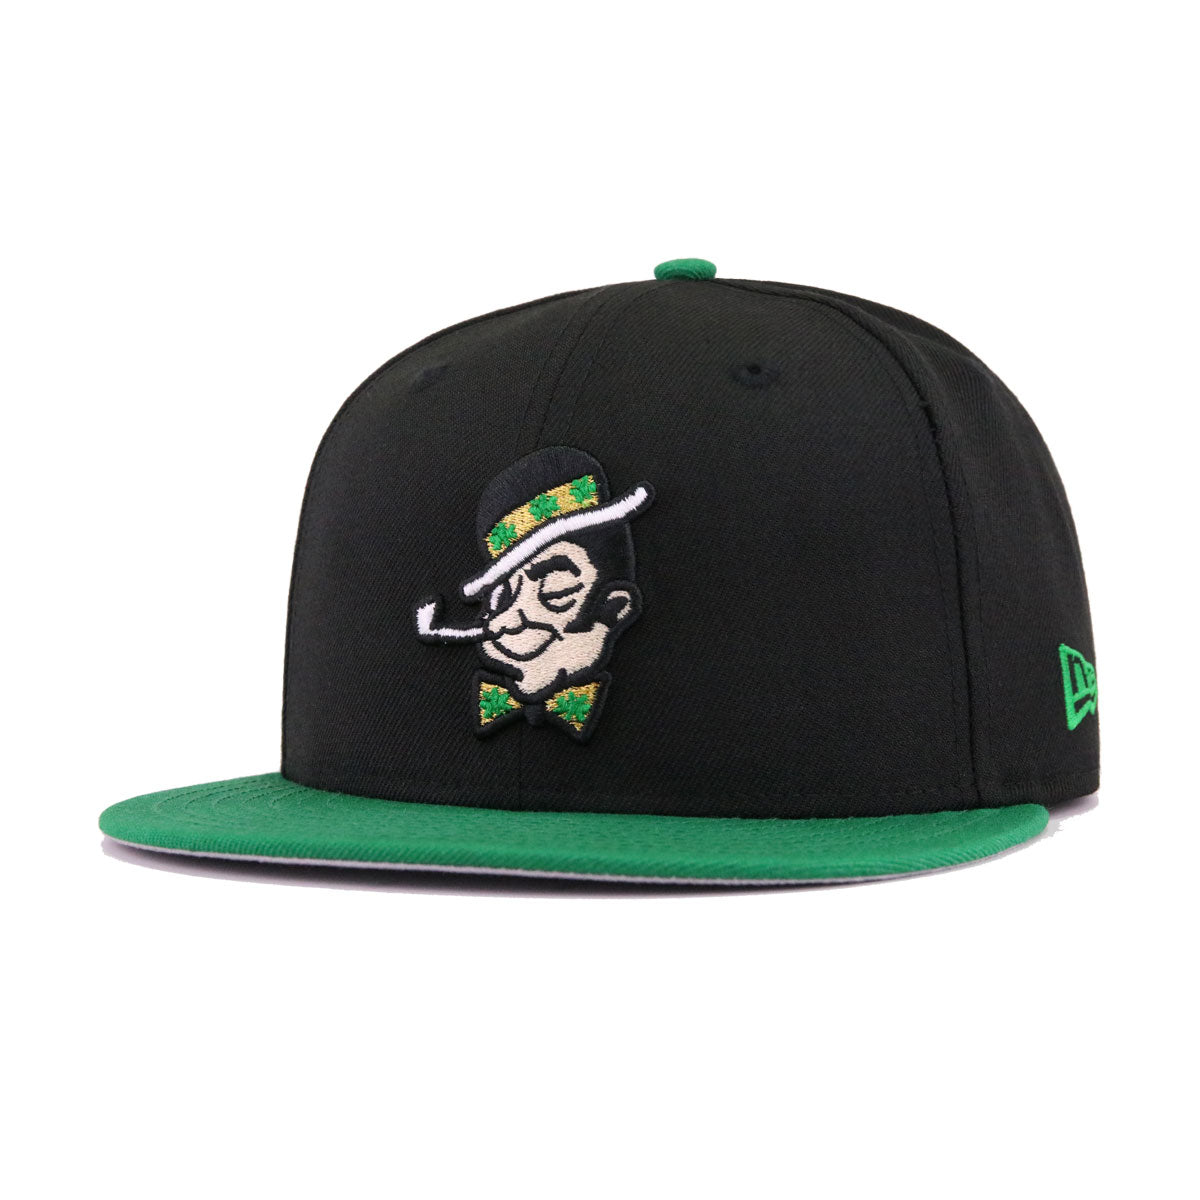 Boston Celtics Black Kelly Green Dissected New Era 9Fifty Snapback